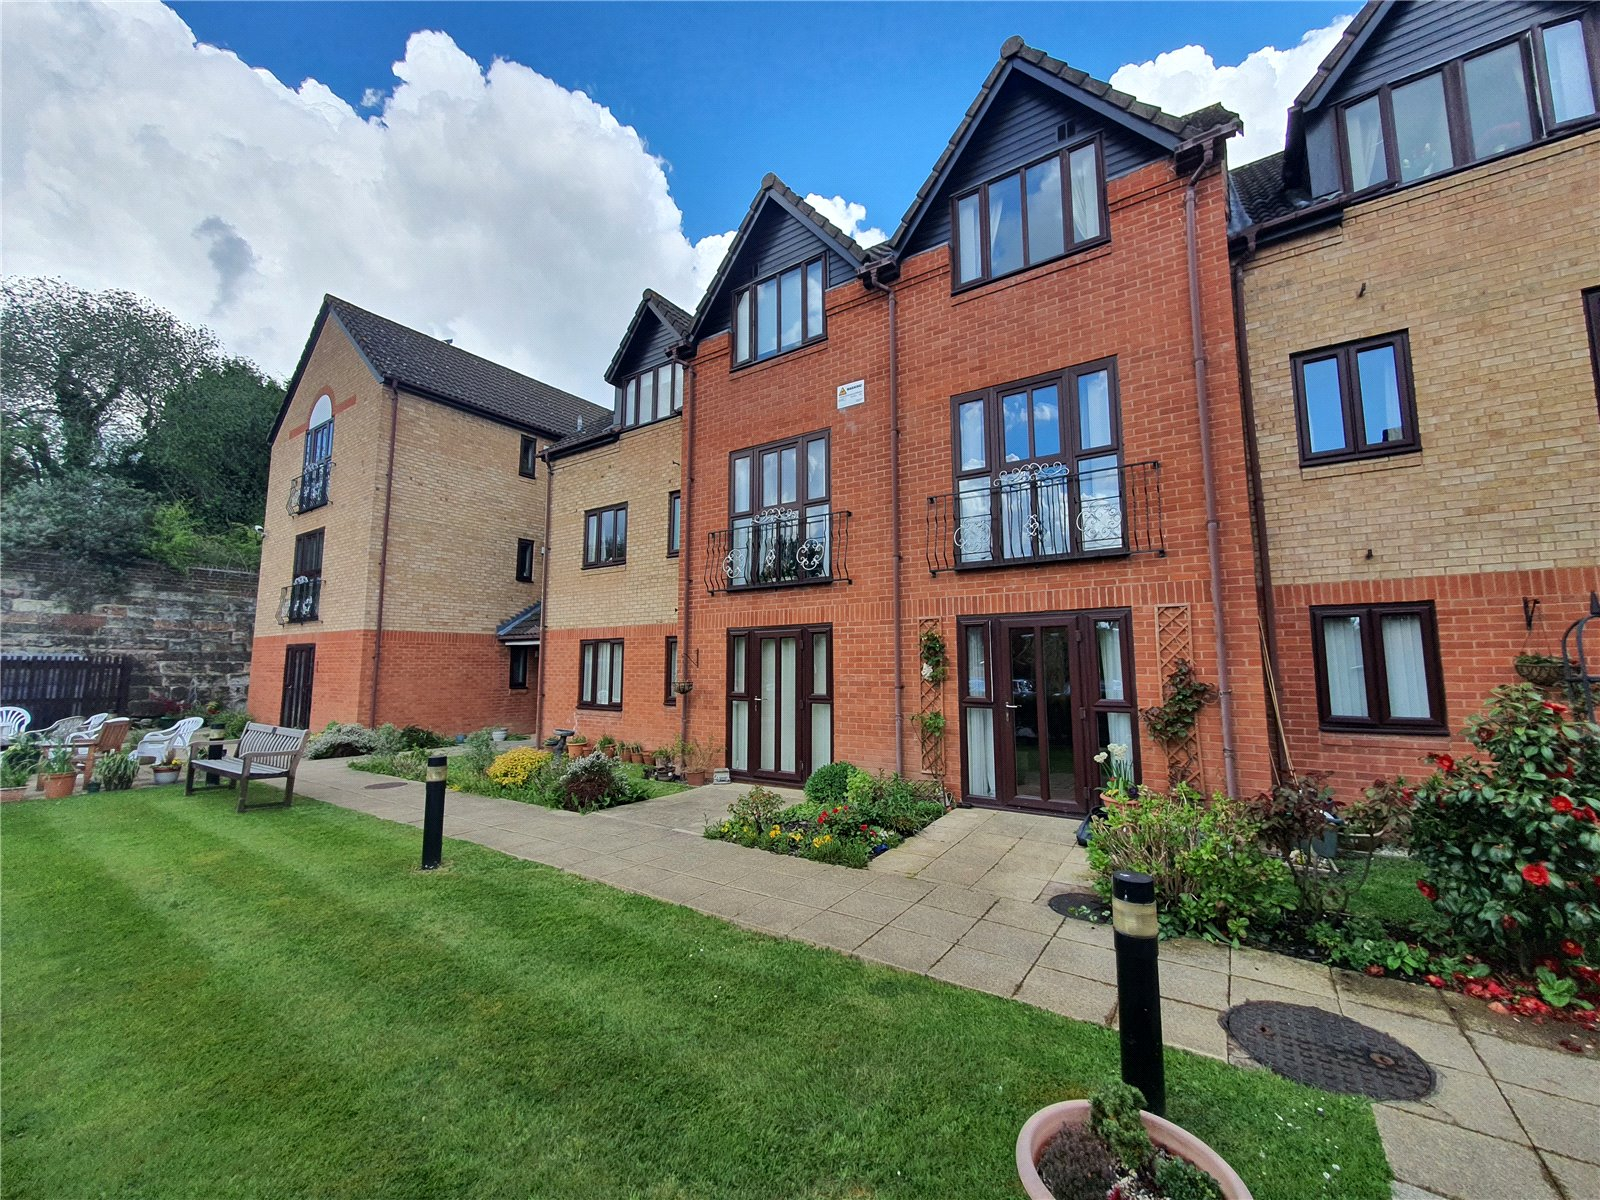 Kingfisher Court, Woodfield Road, Droitwich, WR9